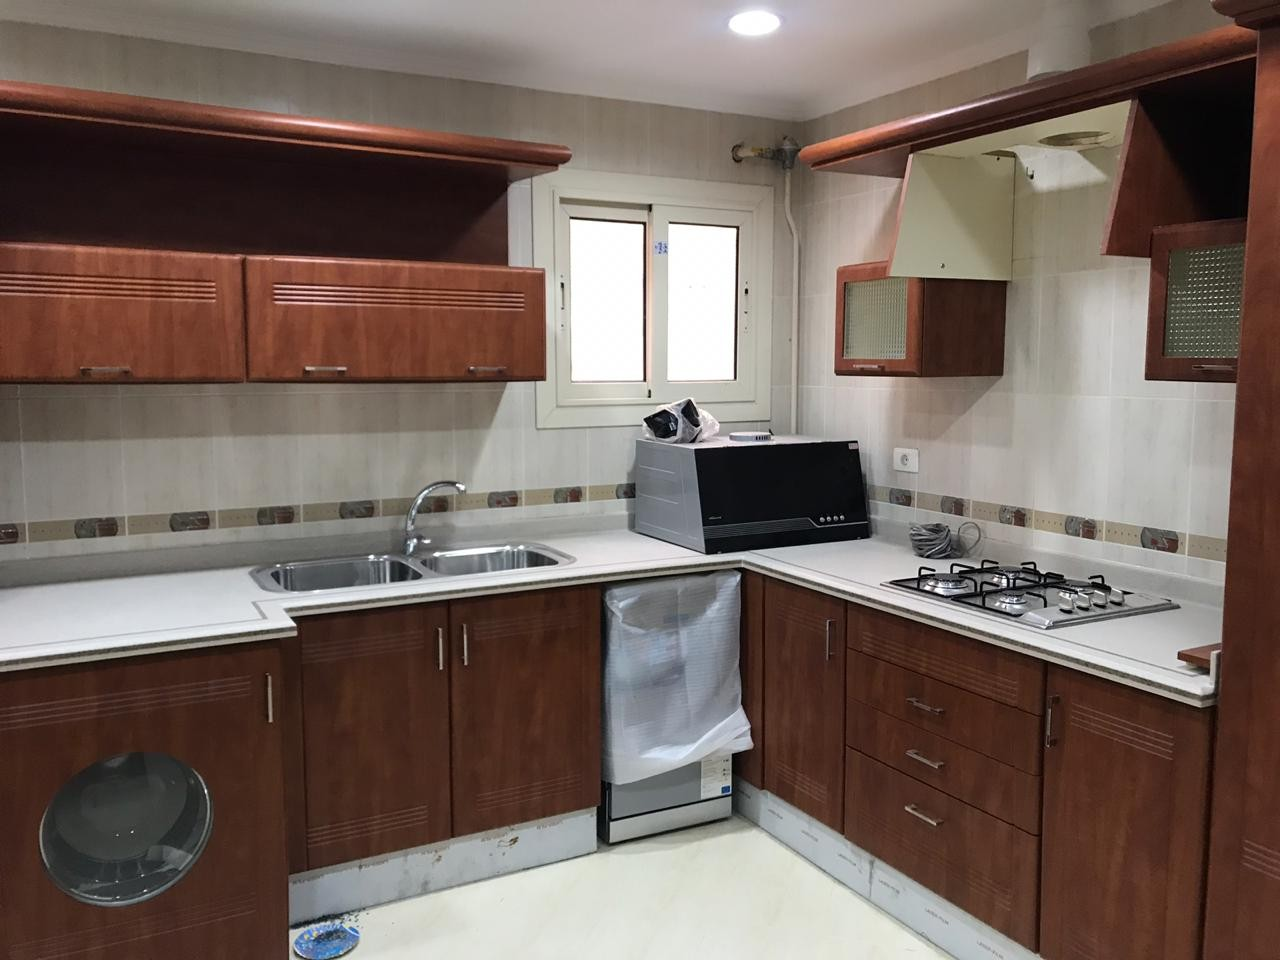 Apartments For Rent In Katameya El Nakheel Compound -#14